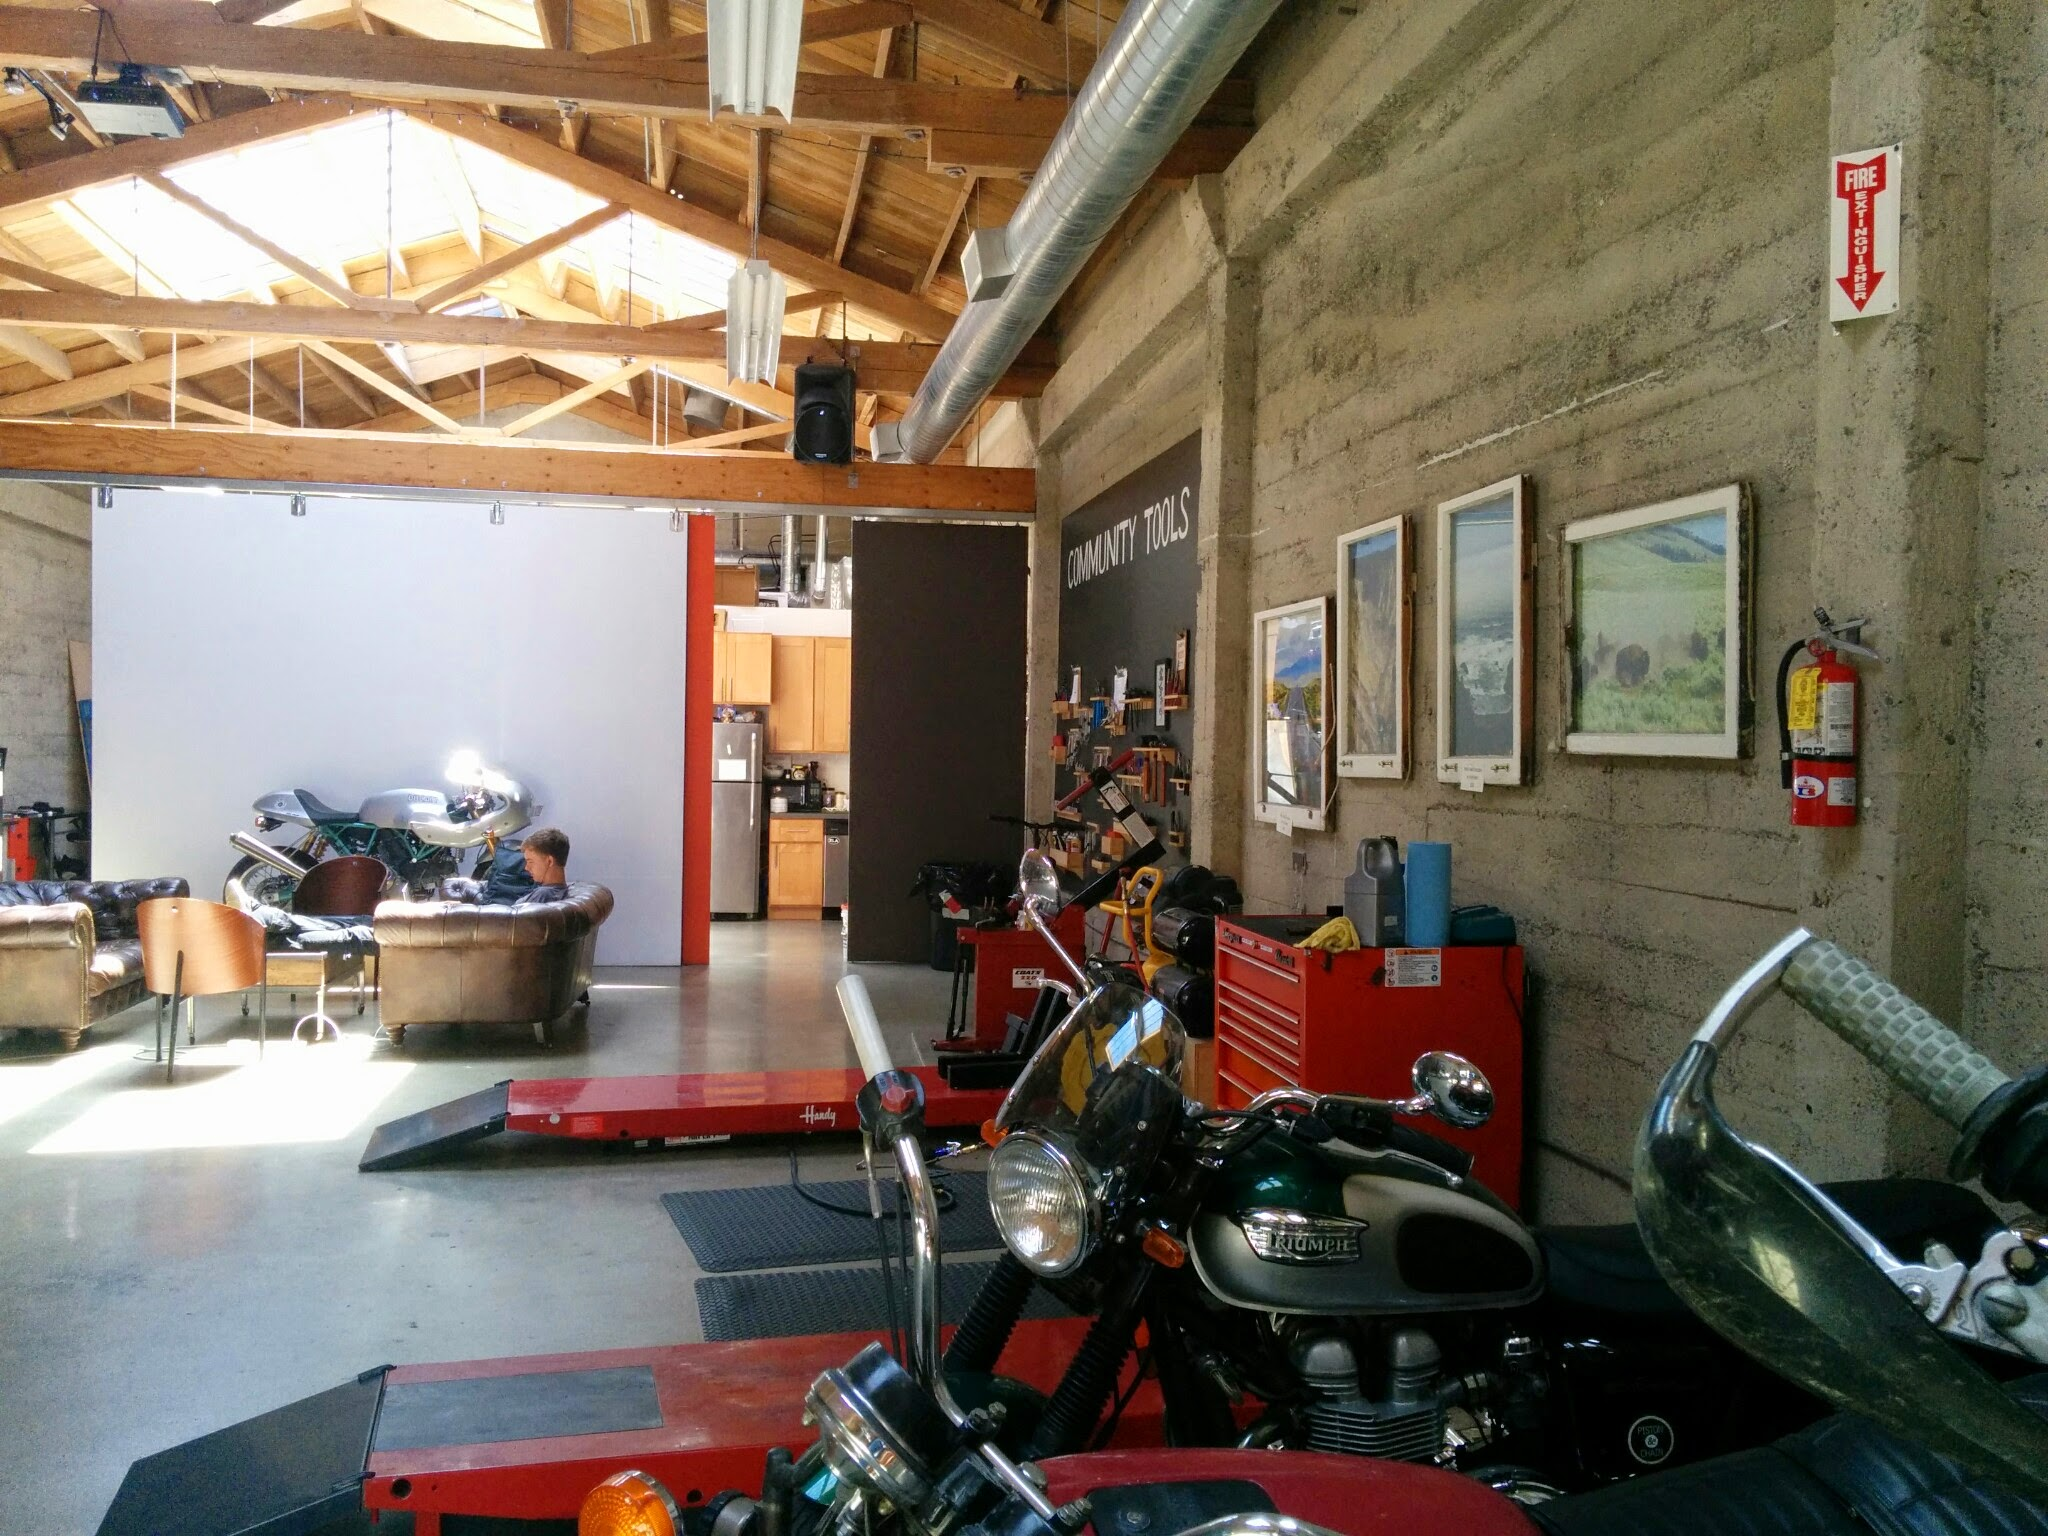 Inside the Piston & Chain Motorcycle Club